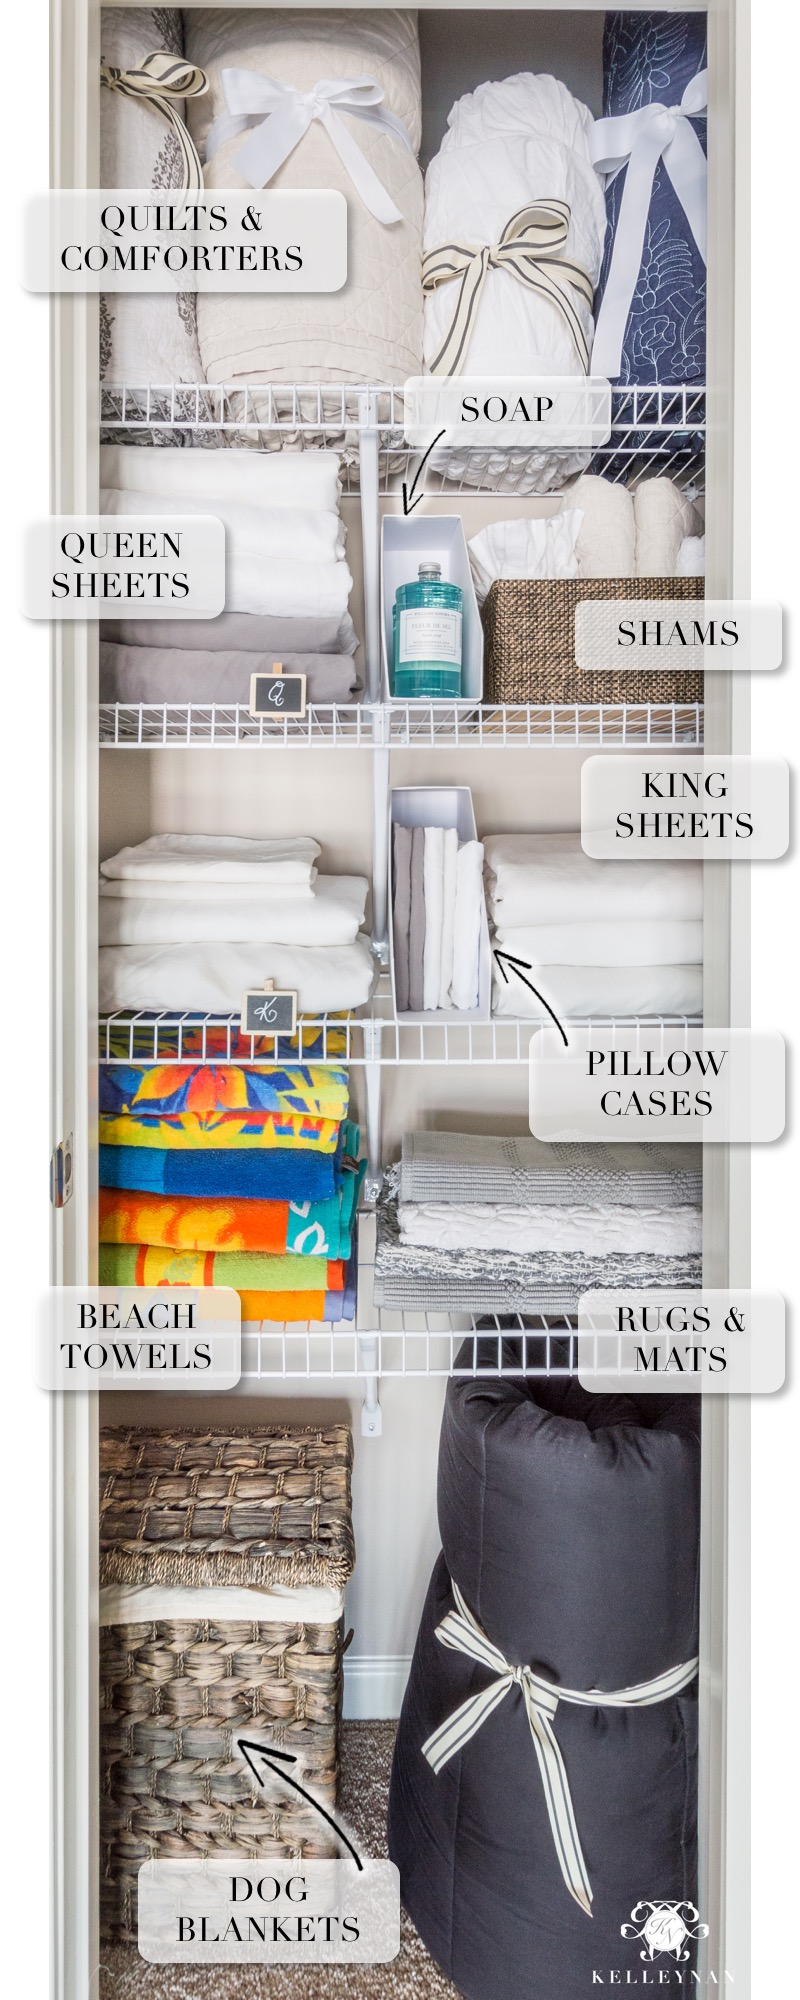 How To Wiki 89 How To Organize A Closet Without Shelves